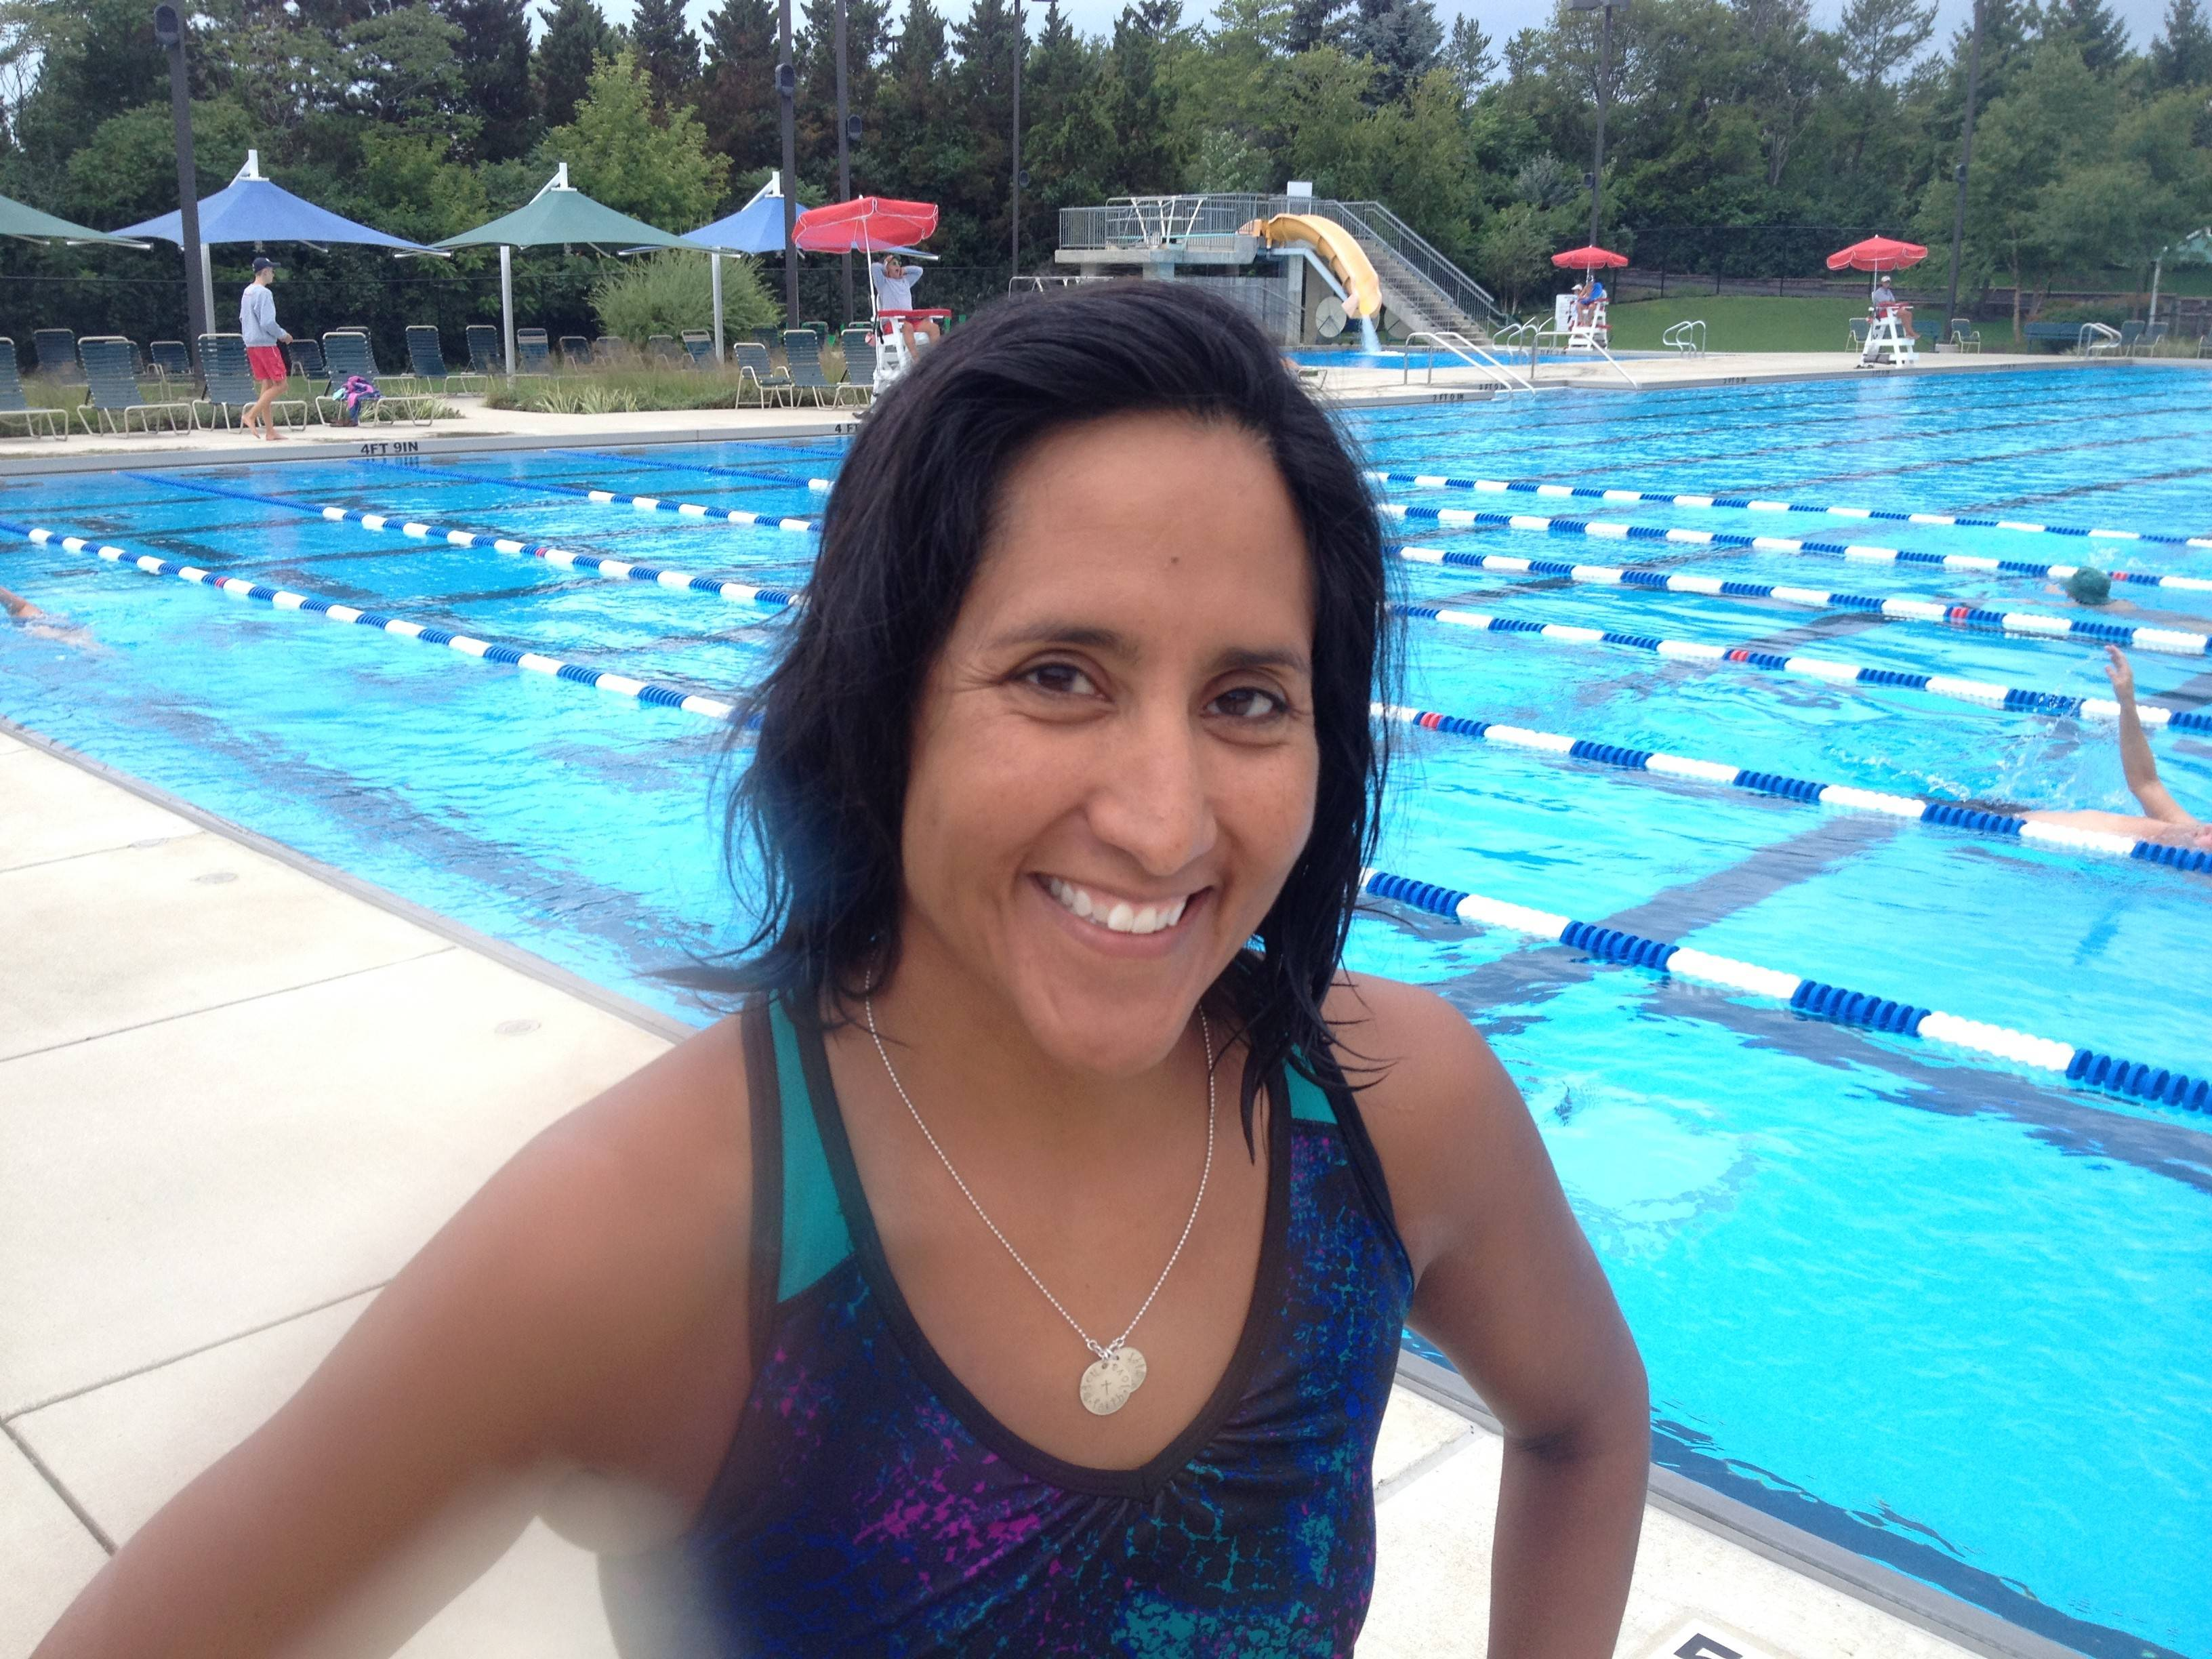 Palatine's Christine Gates will attempt an Ironman triathlon -- 2.4-mile swim, 112-mile bike and 26.2-mile run -- Sept. 7 in Madison, Wisconsin.